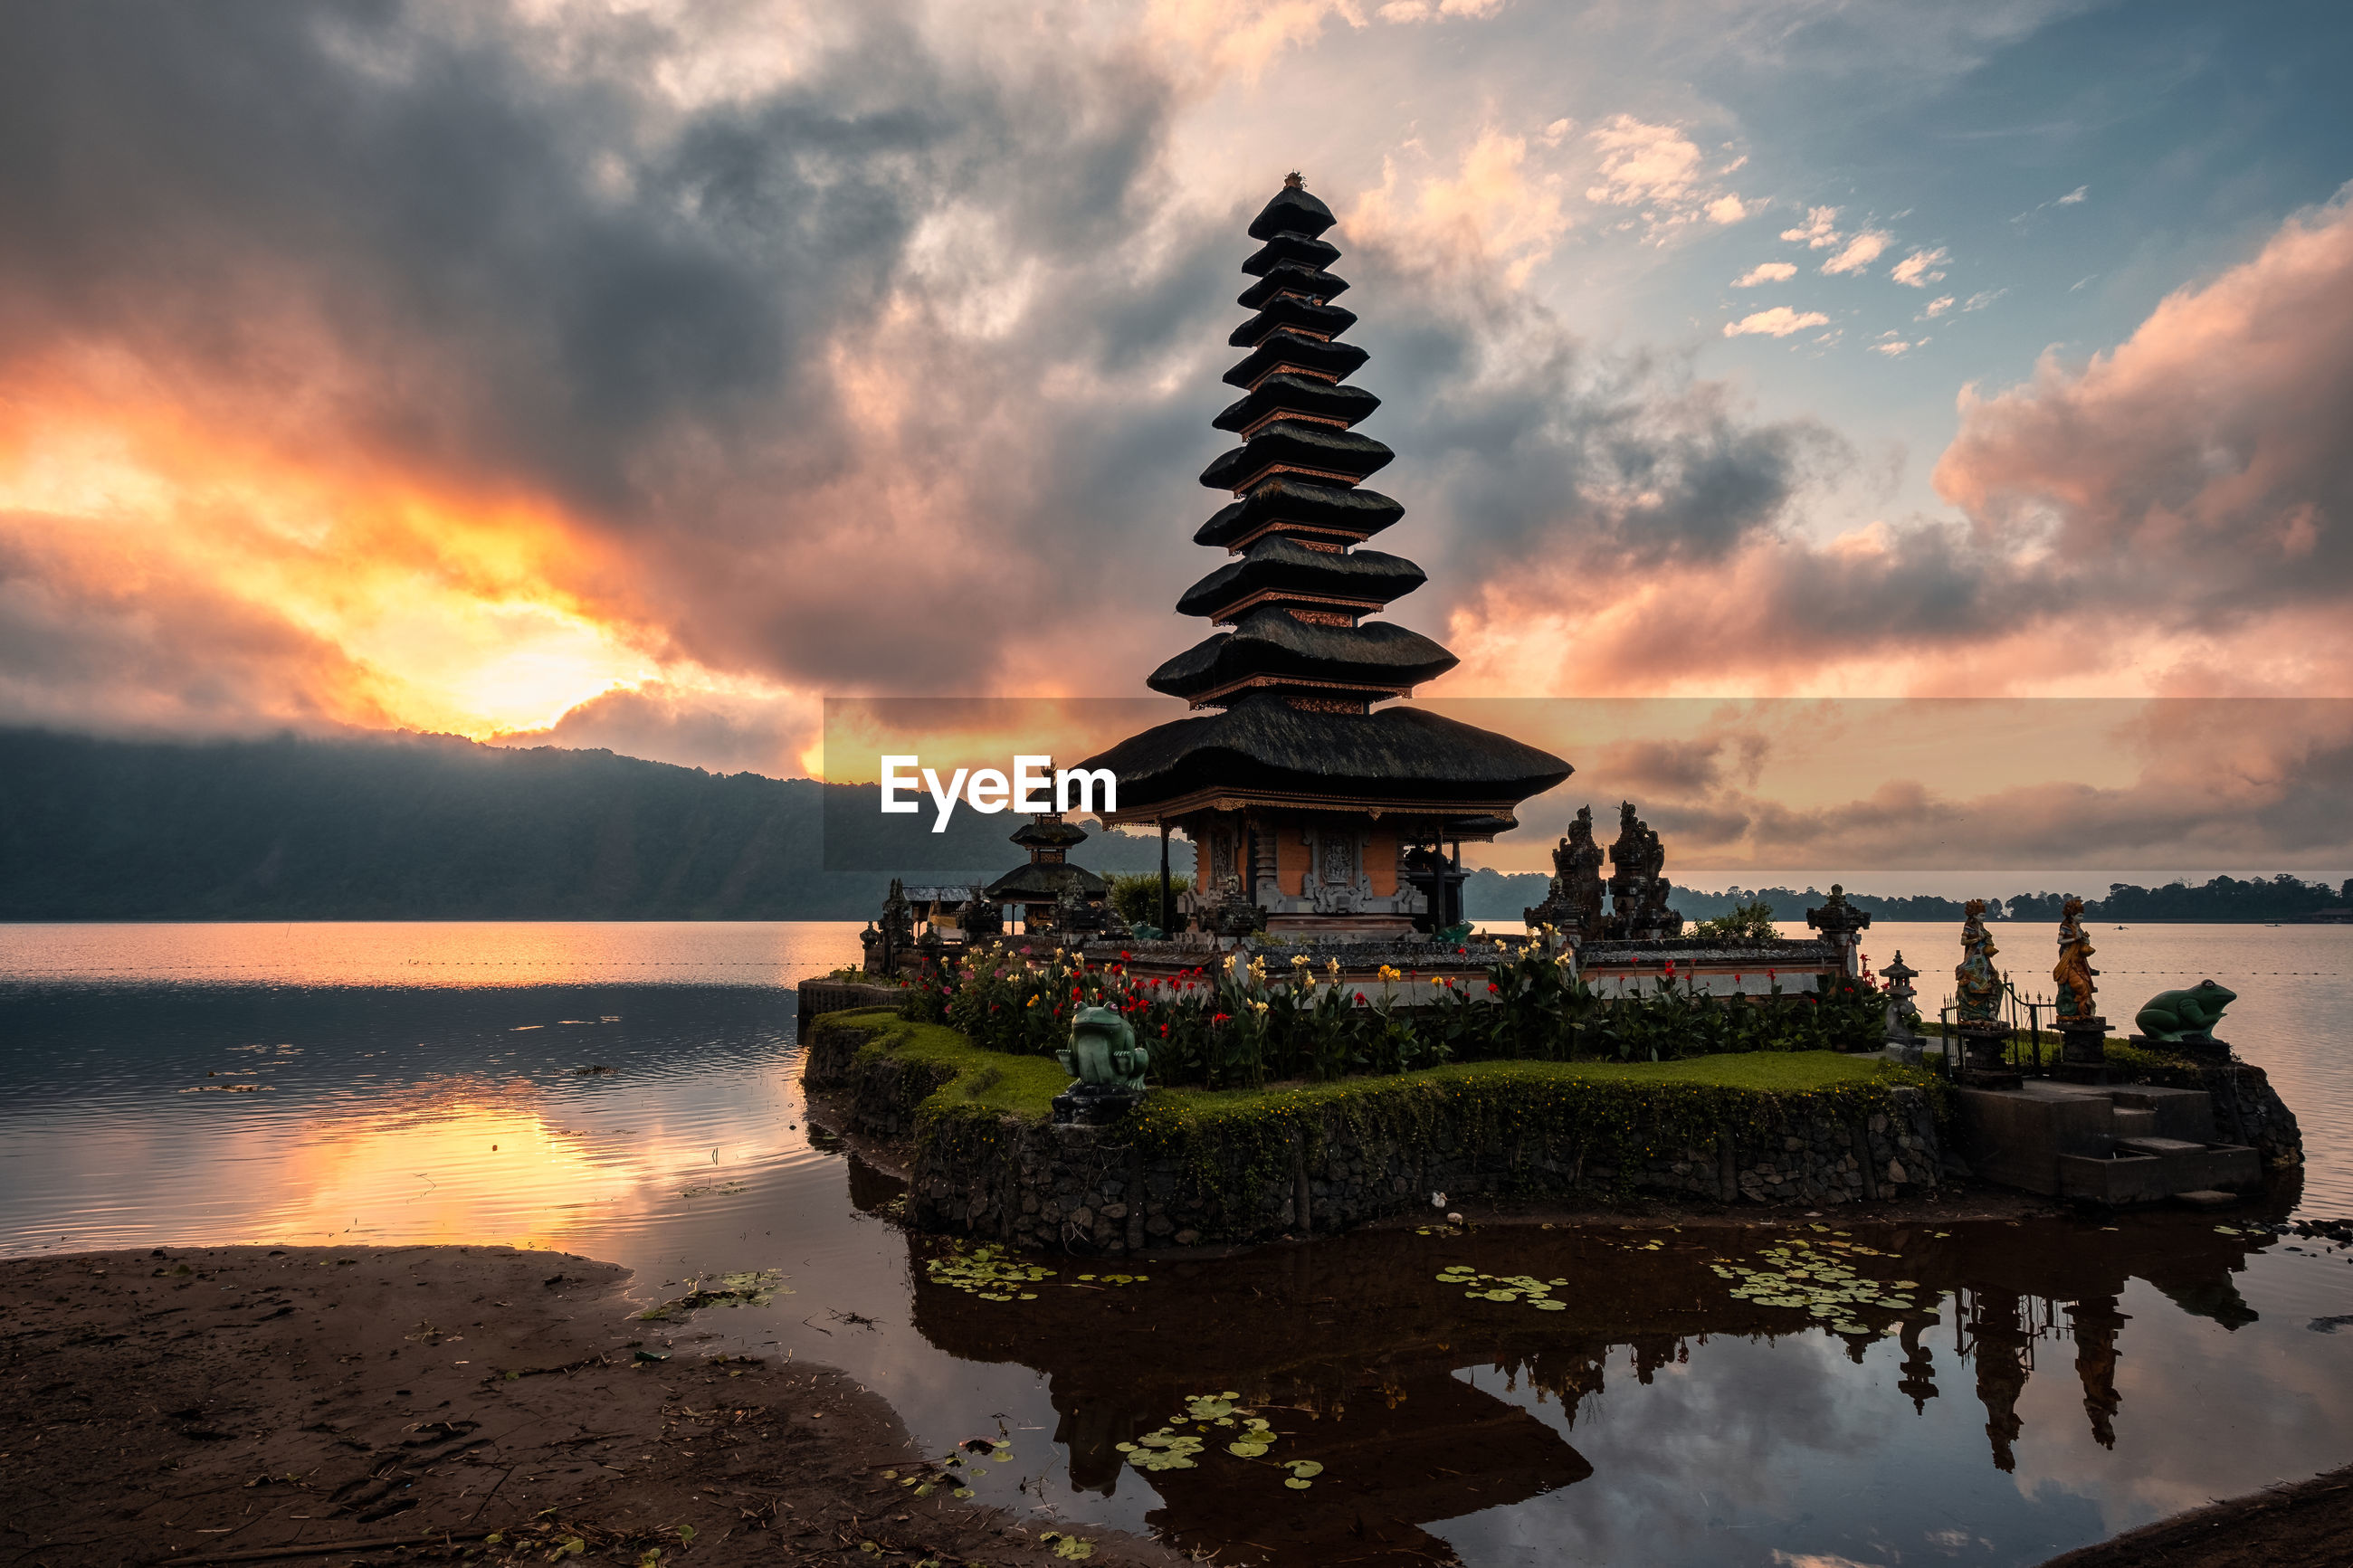 TEMPLE BY LAKE AGAINST SKY DURING SUNSET